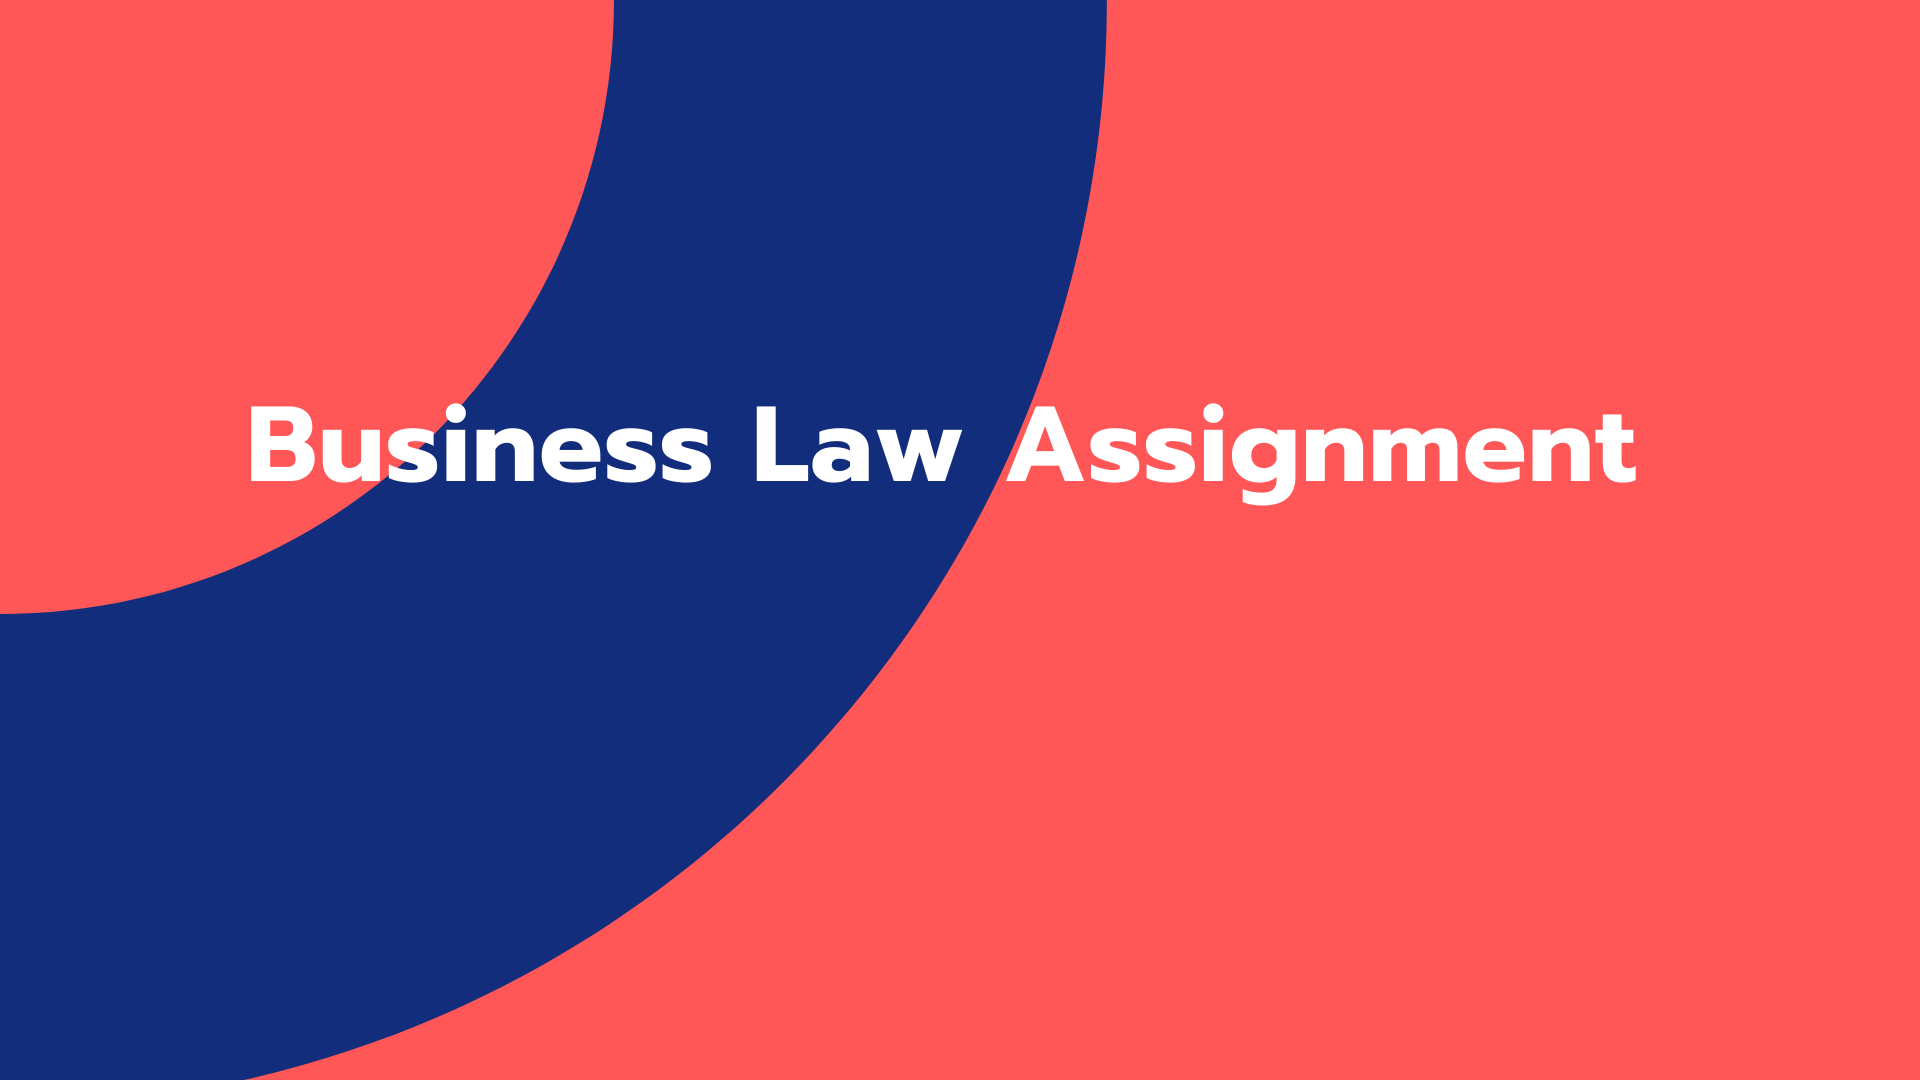 Business Law Assignment